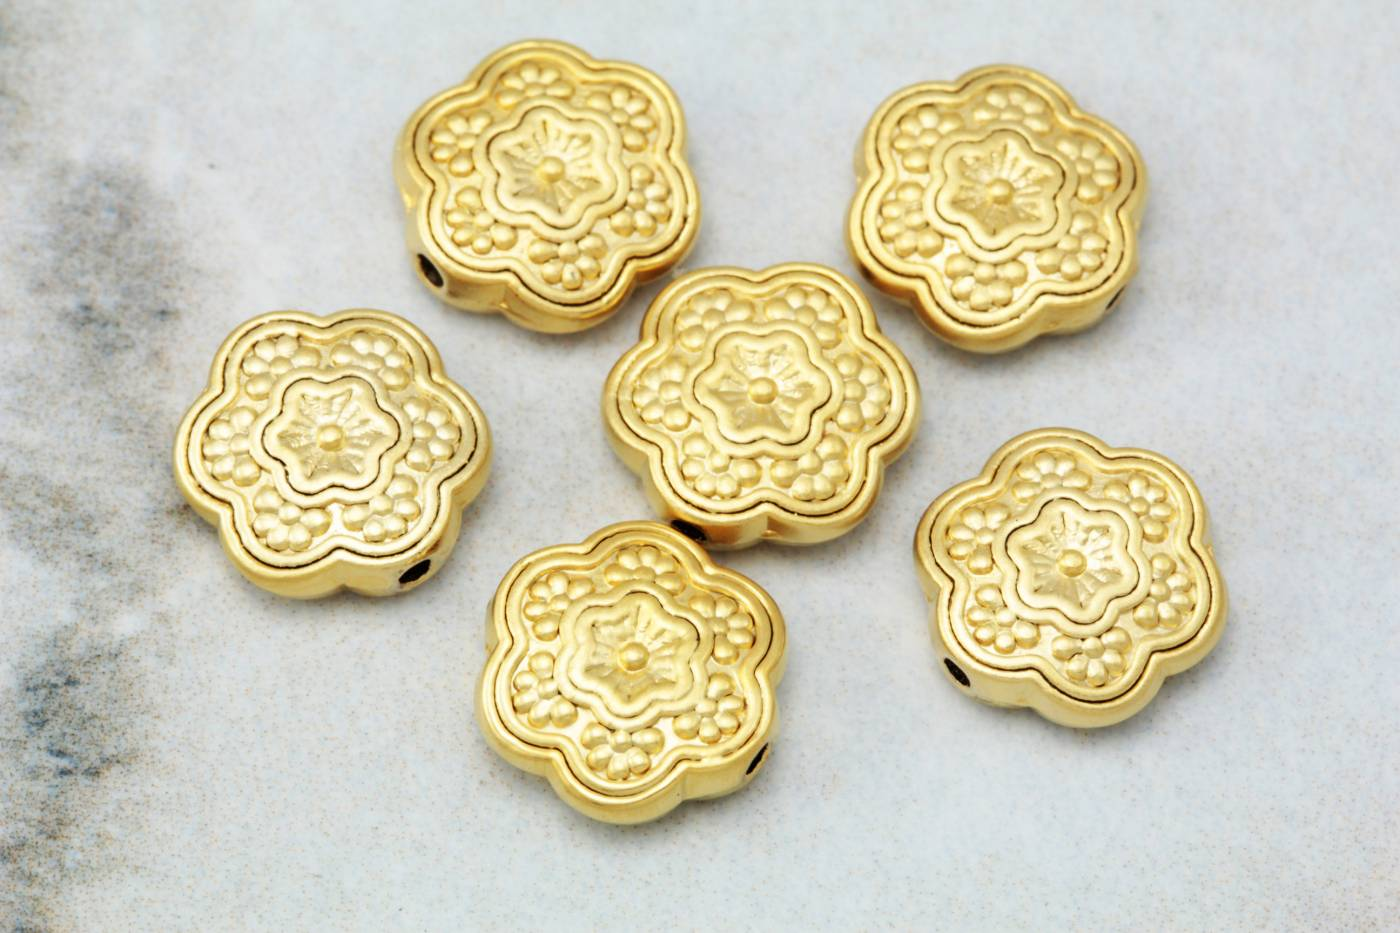 gold-plated-metal-flat-daisy-charms.jpg